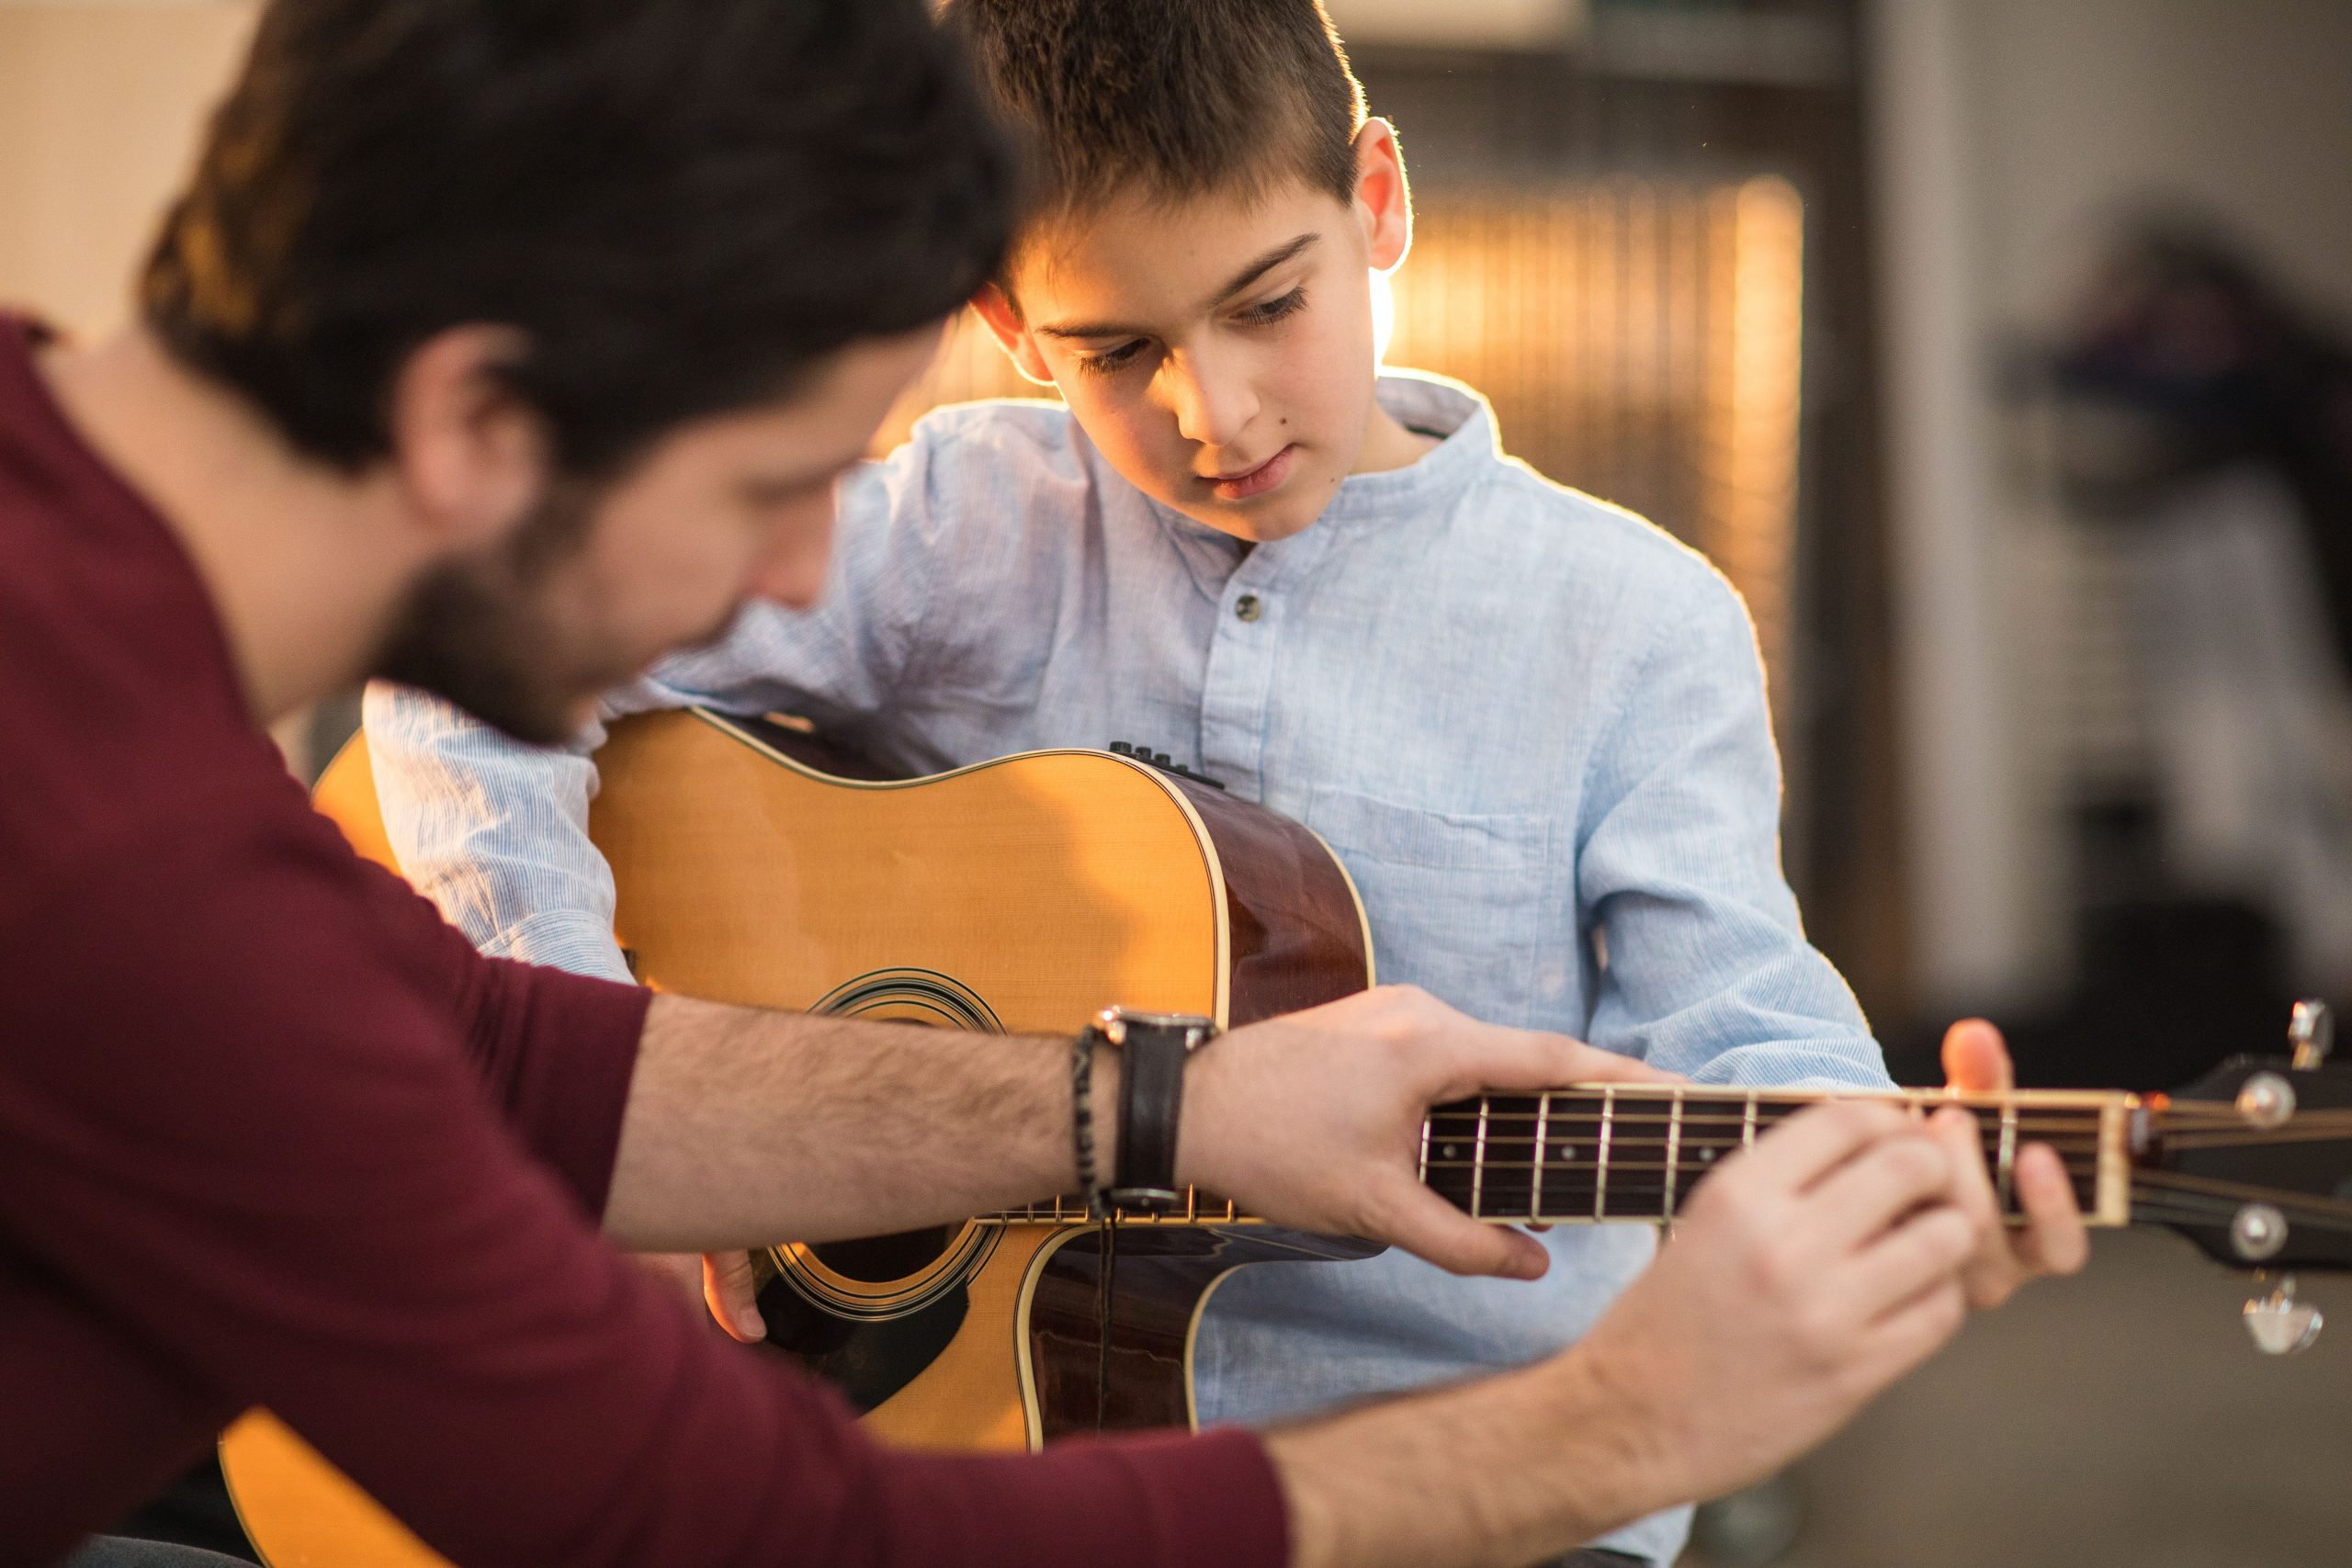 guitar-lessons-near-me-cost-min